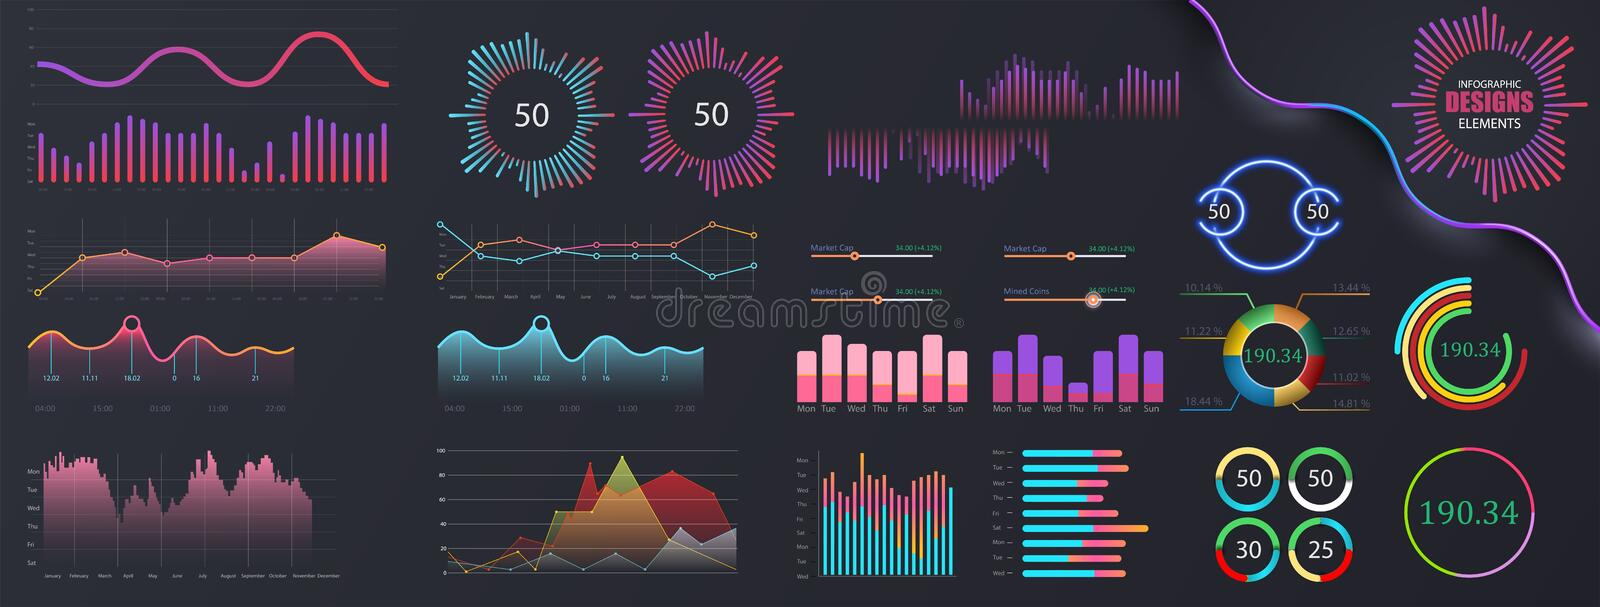 Infographic dashboard template with flat design graphs and pie charts. Information Graphics elements for UI UX design. royalty free illustration